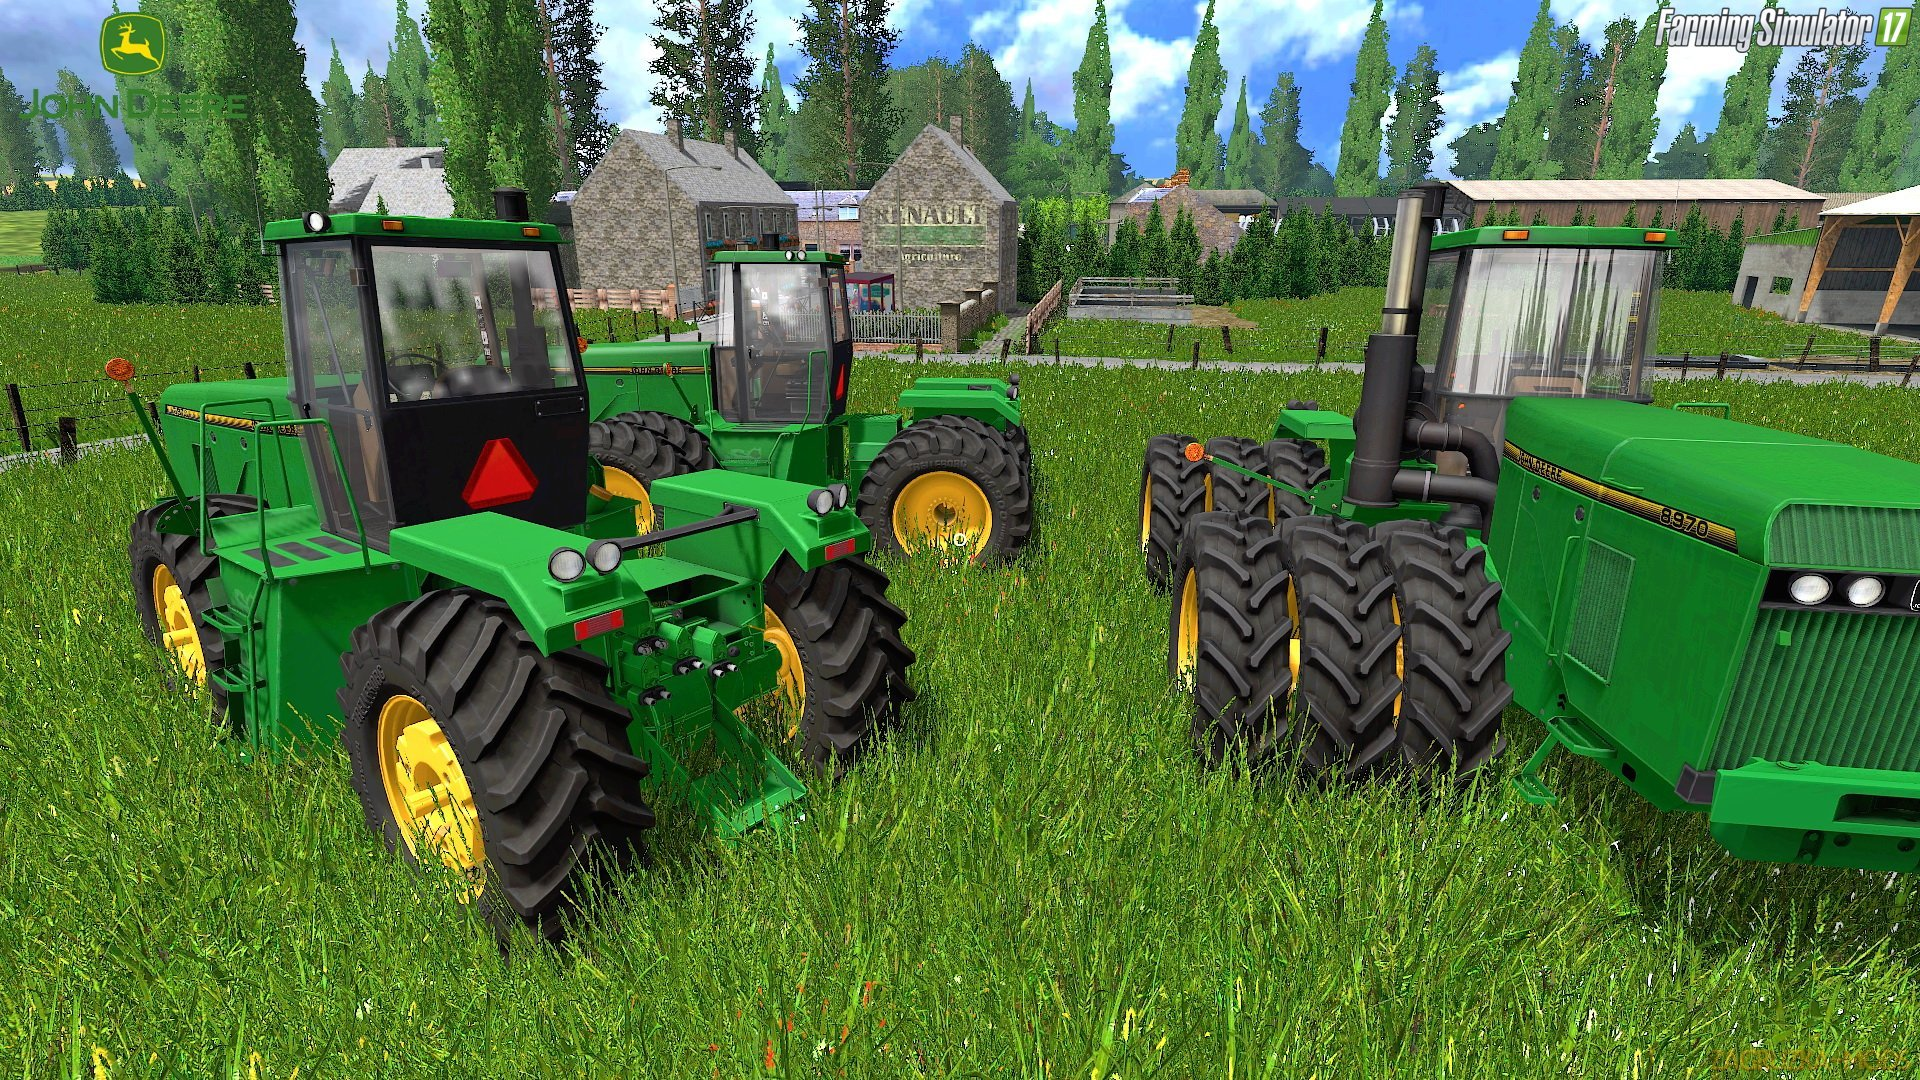 John Deere 8960/8970 Series v1.0.0.2 for FS 17